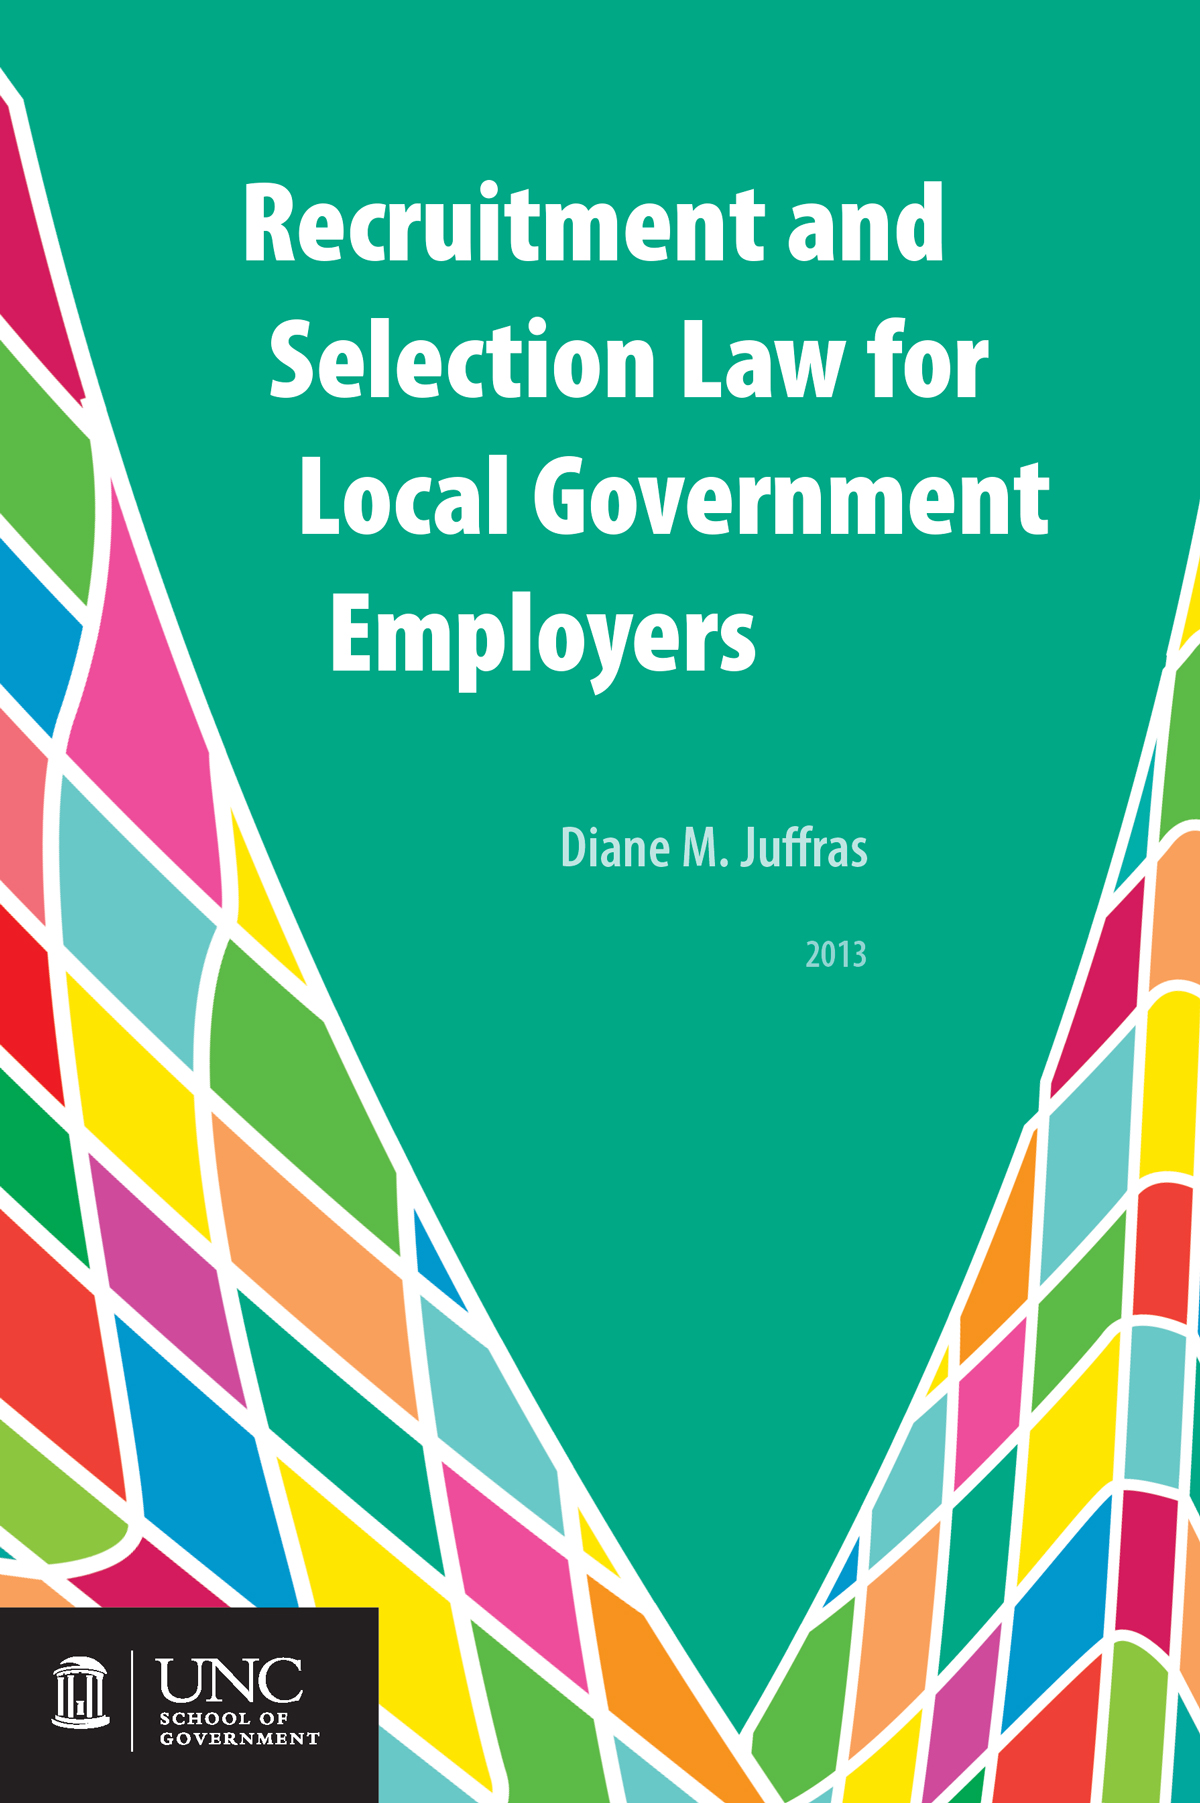 Cover image for E-Book Download Item: Recruitment and Selection Law for Local Government Employers (Mobi file format for Kindle devices)